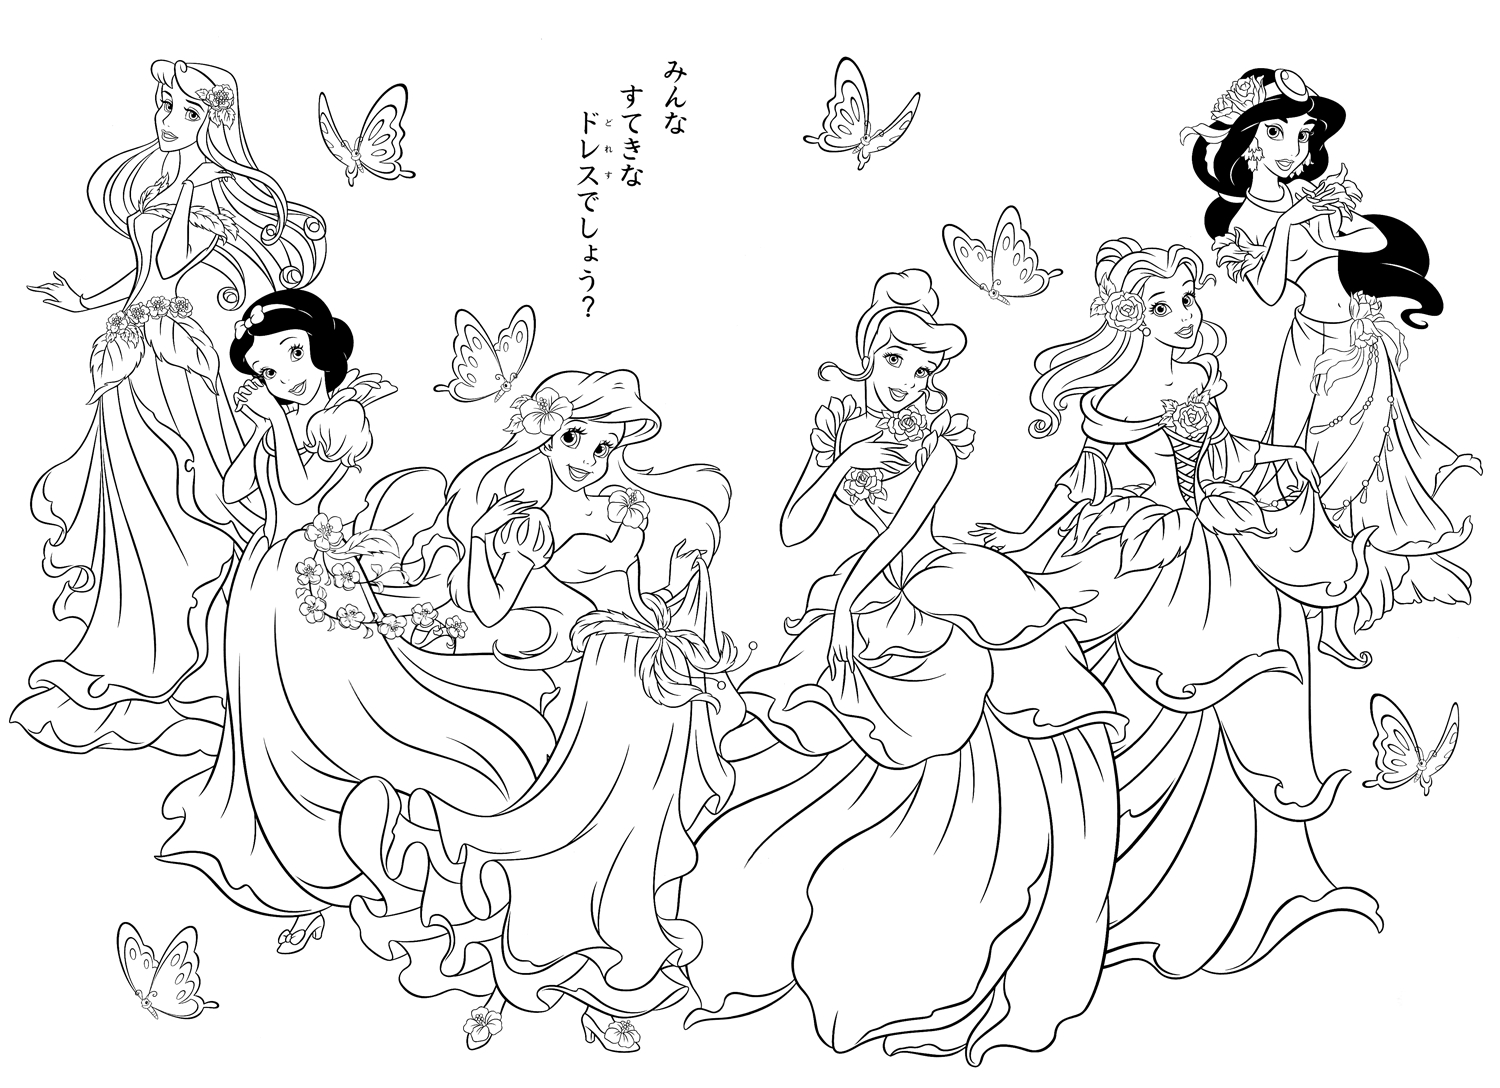 princess jasmine coloring pages - thread=